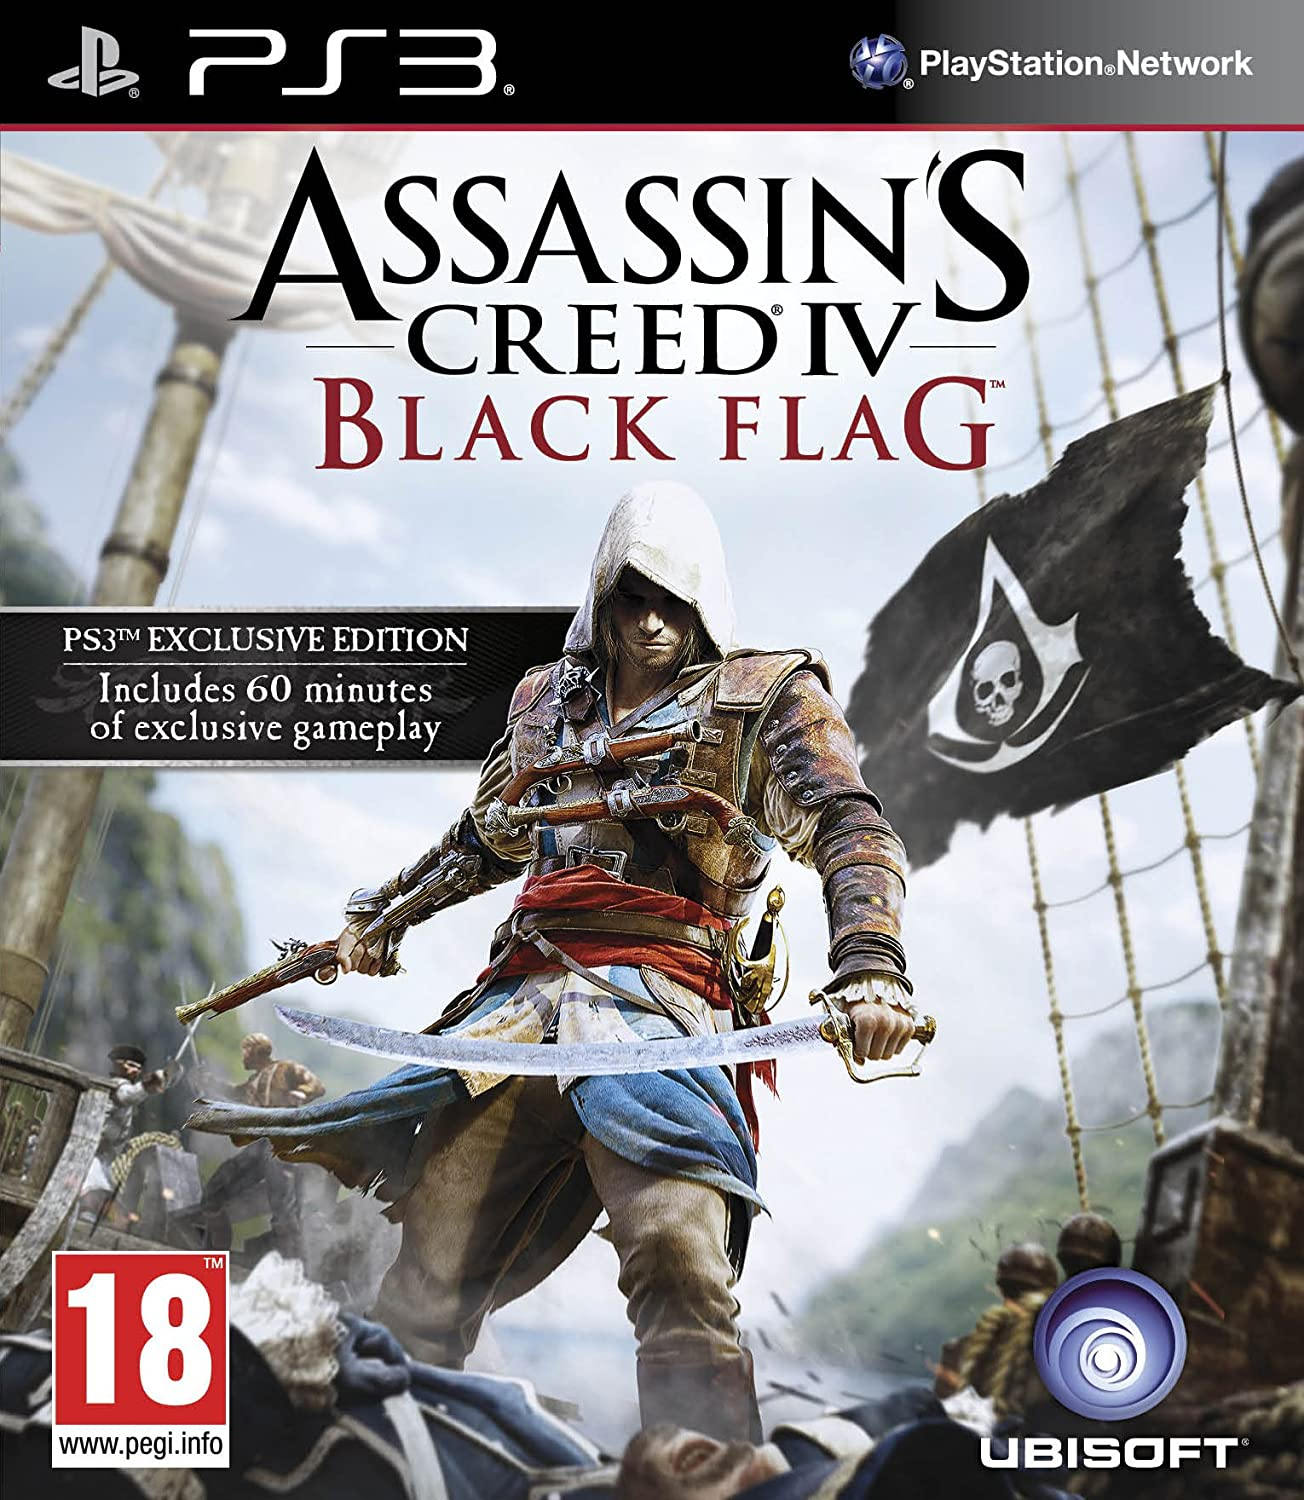 Assassins creed iv black flag ps3 amazon pc video games voltagebd Image collections